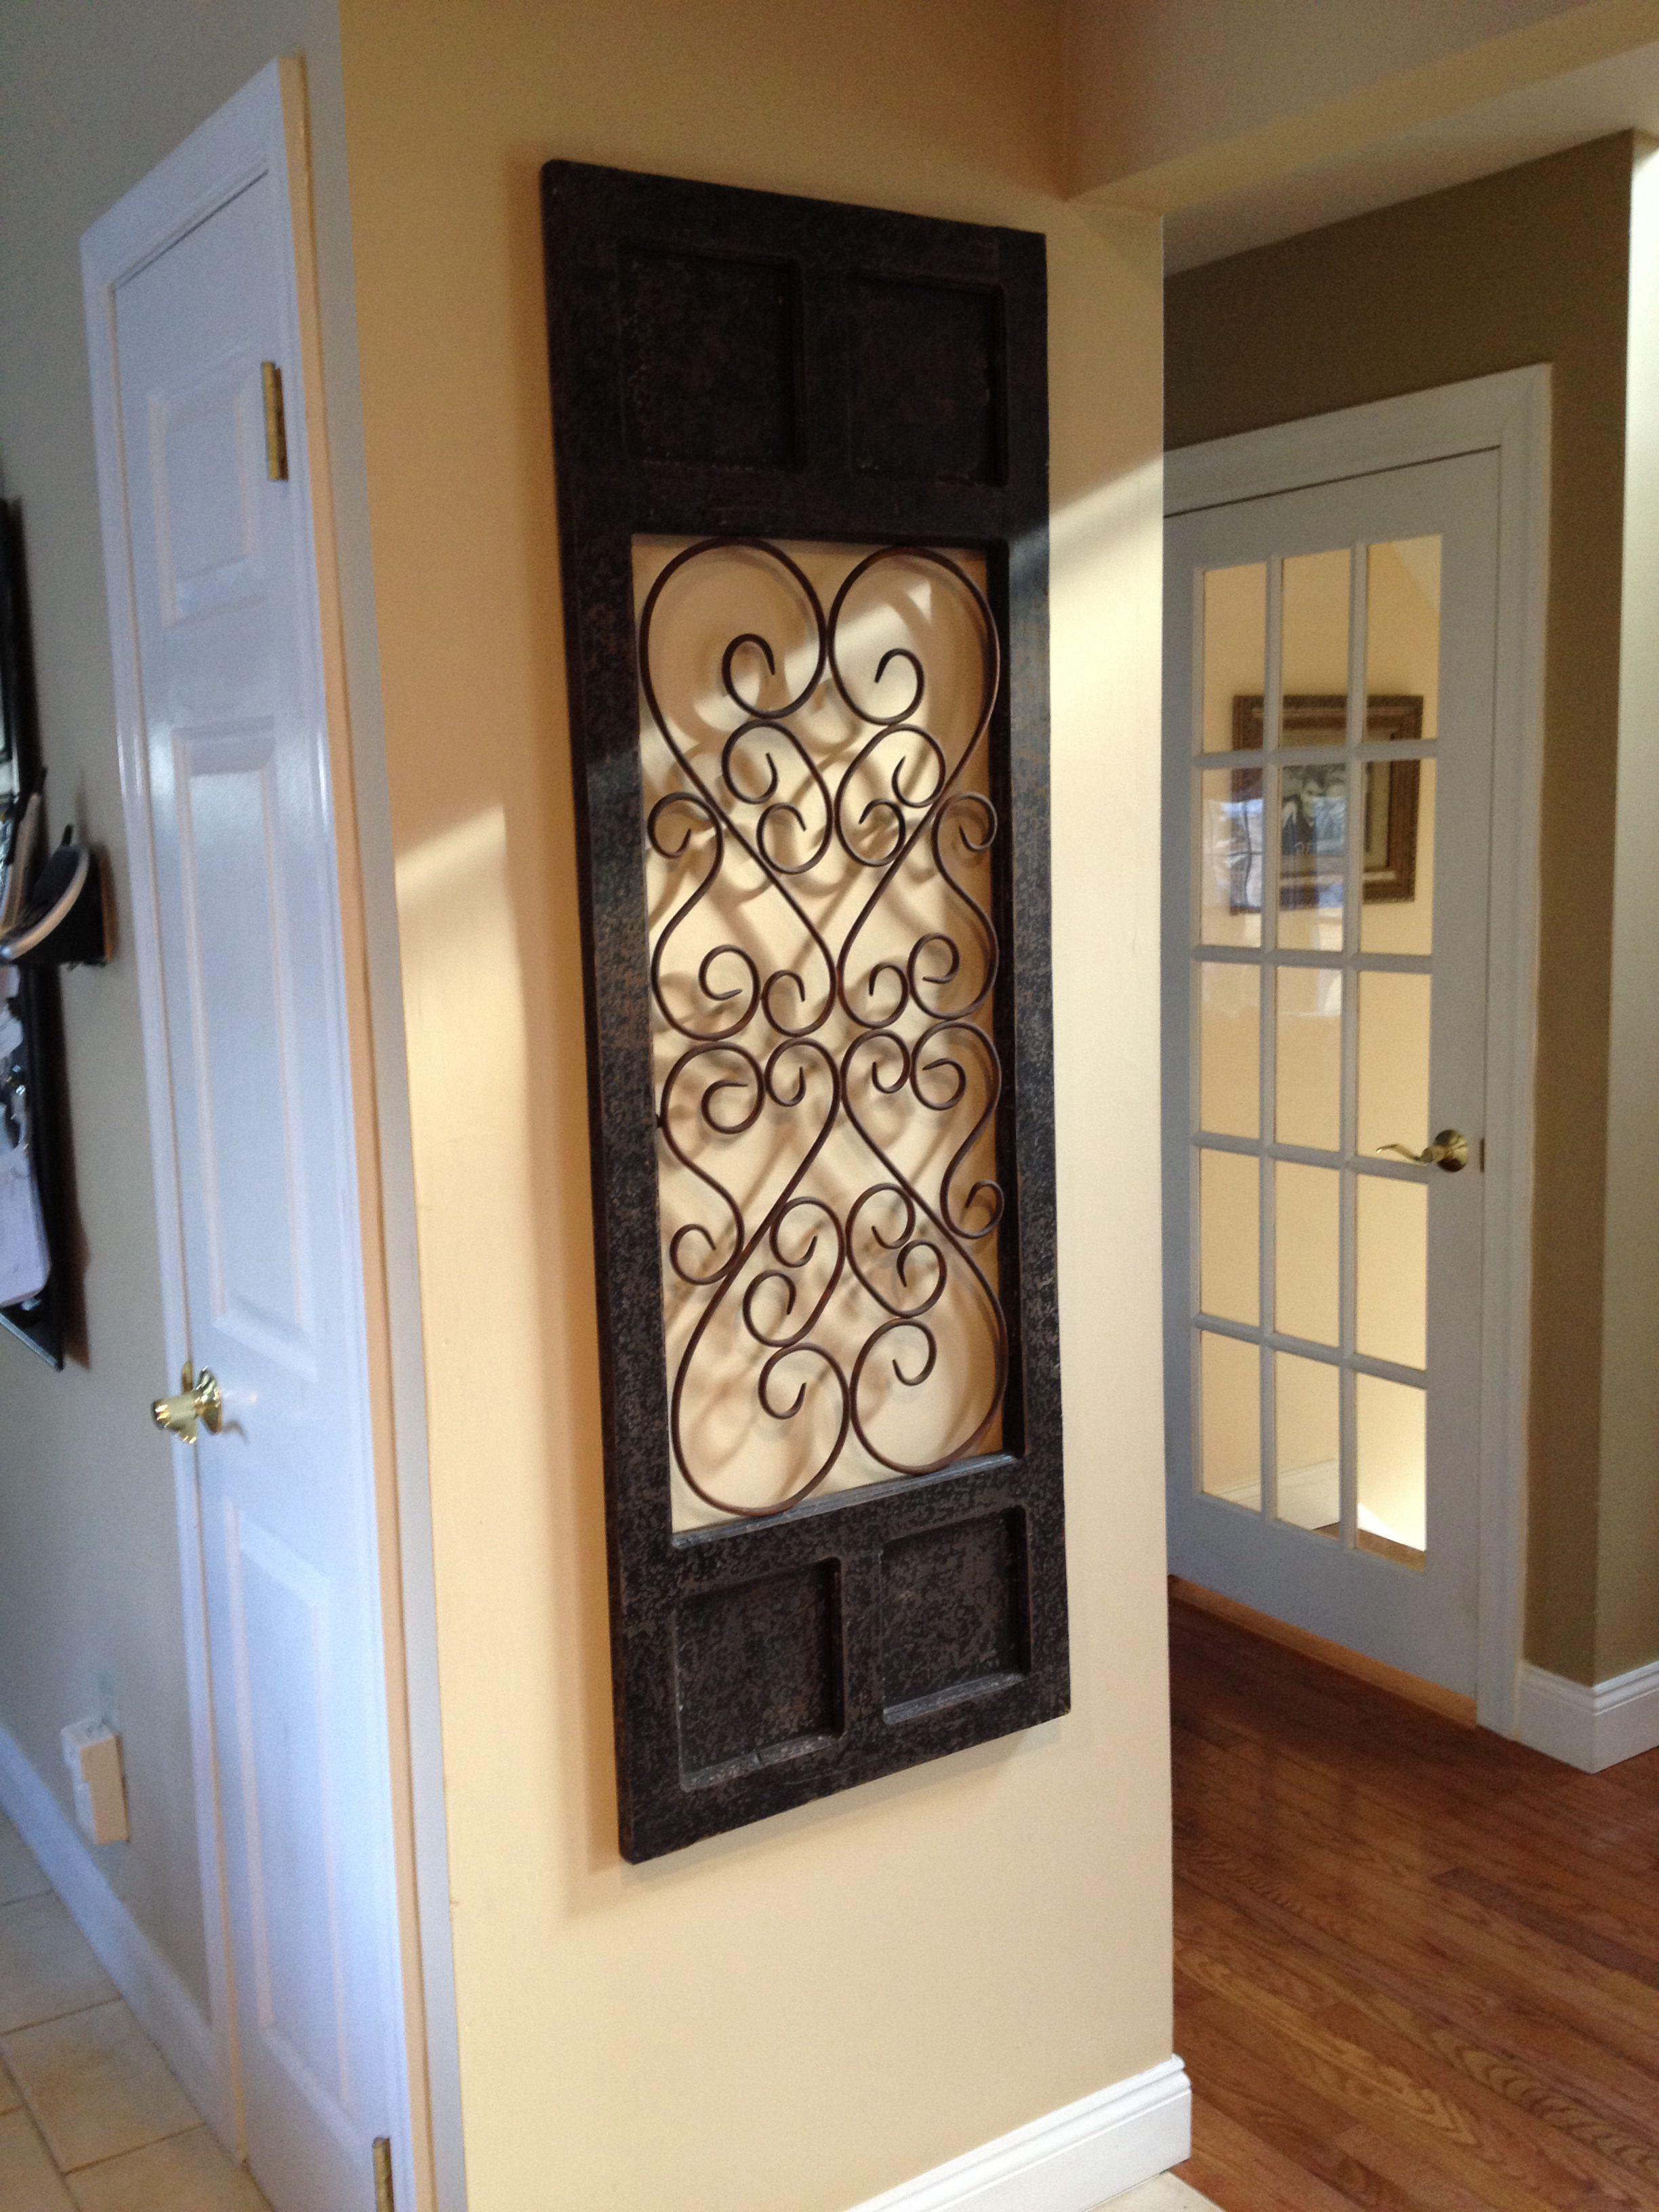 Wrought Iron Wall Decor. I Love Wrought Iron For The Walls within Brown Wood And Metal Wall Decor (Image 30 of 30)